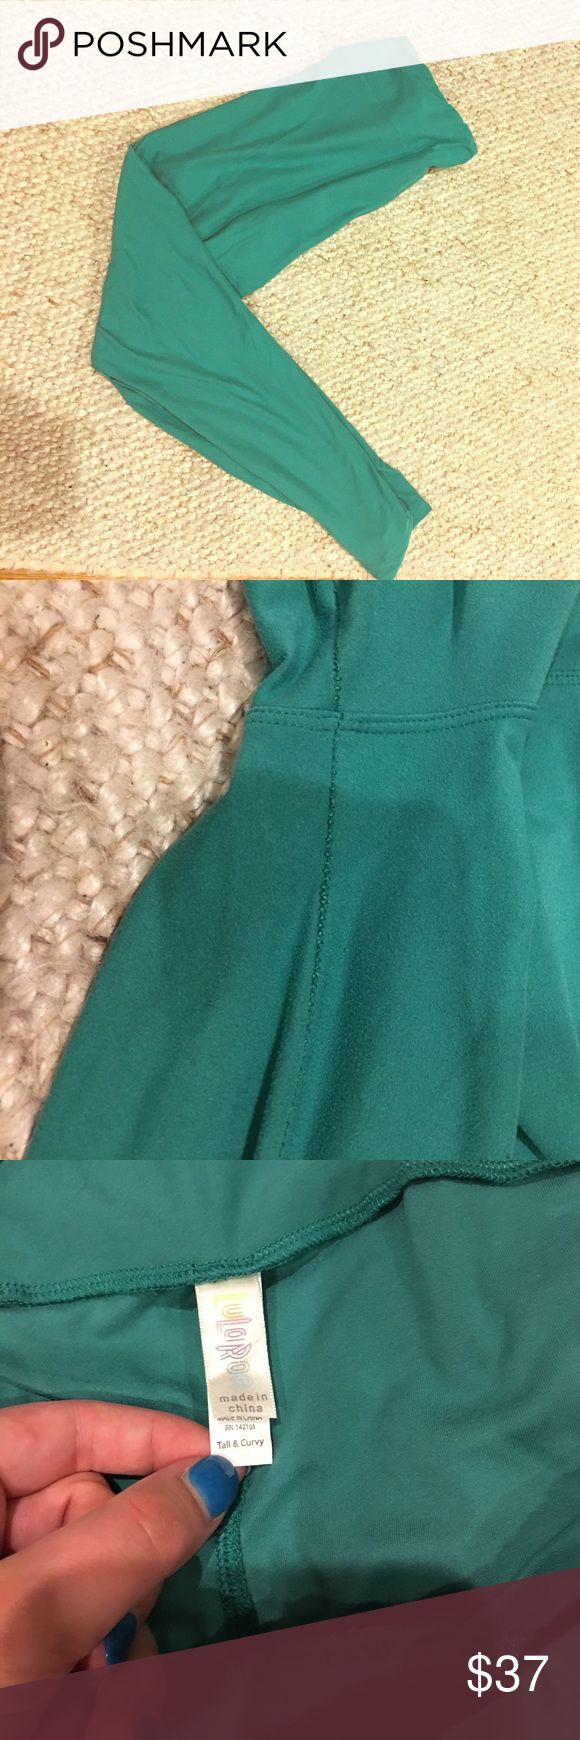 LuLaRoe jade green Tall & Curvy TC Leggings 🍀 Super soft LuLaRoe leggings in gently used condition. The seams are stretched a little (see pic) but overall great condition! In the last photo, this color is on the right. LuLaRoe Pants Leggings